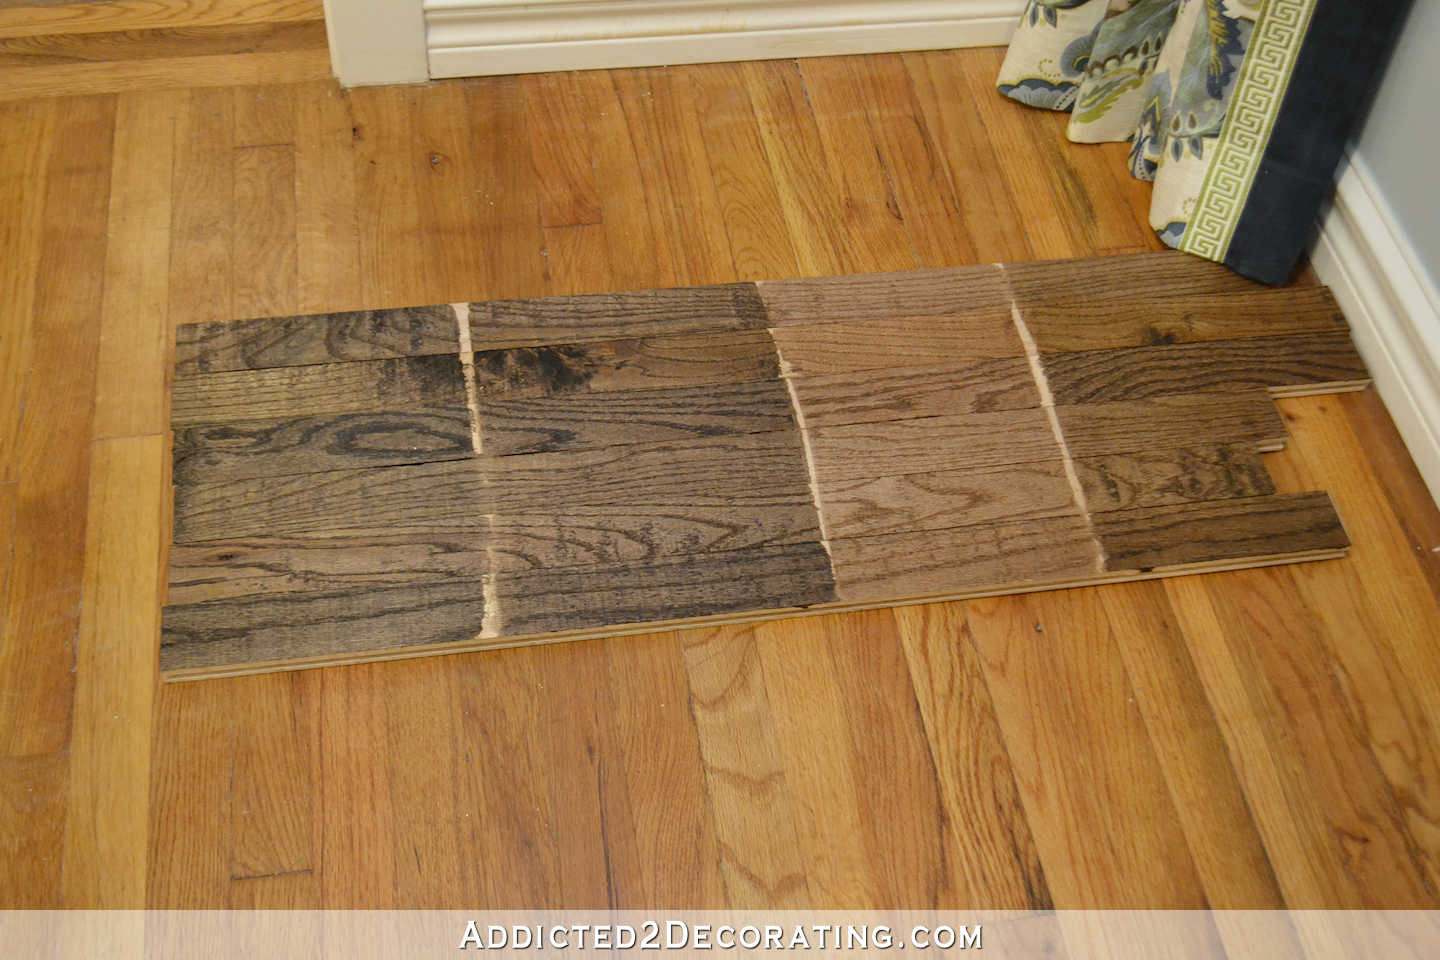 2 red oak hardwood flooring of finishing red oak flooring home design ideas with testing stain colors for my red oak hardwood floor